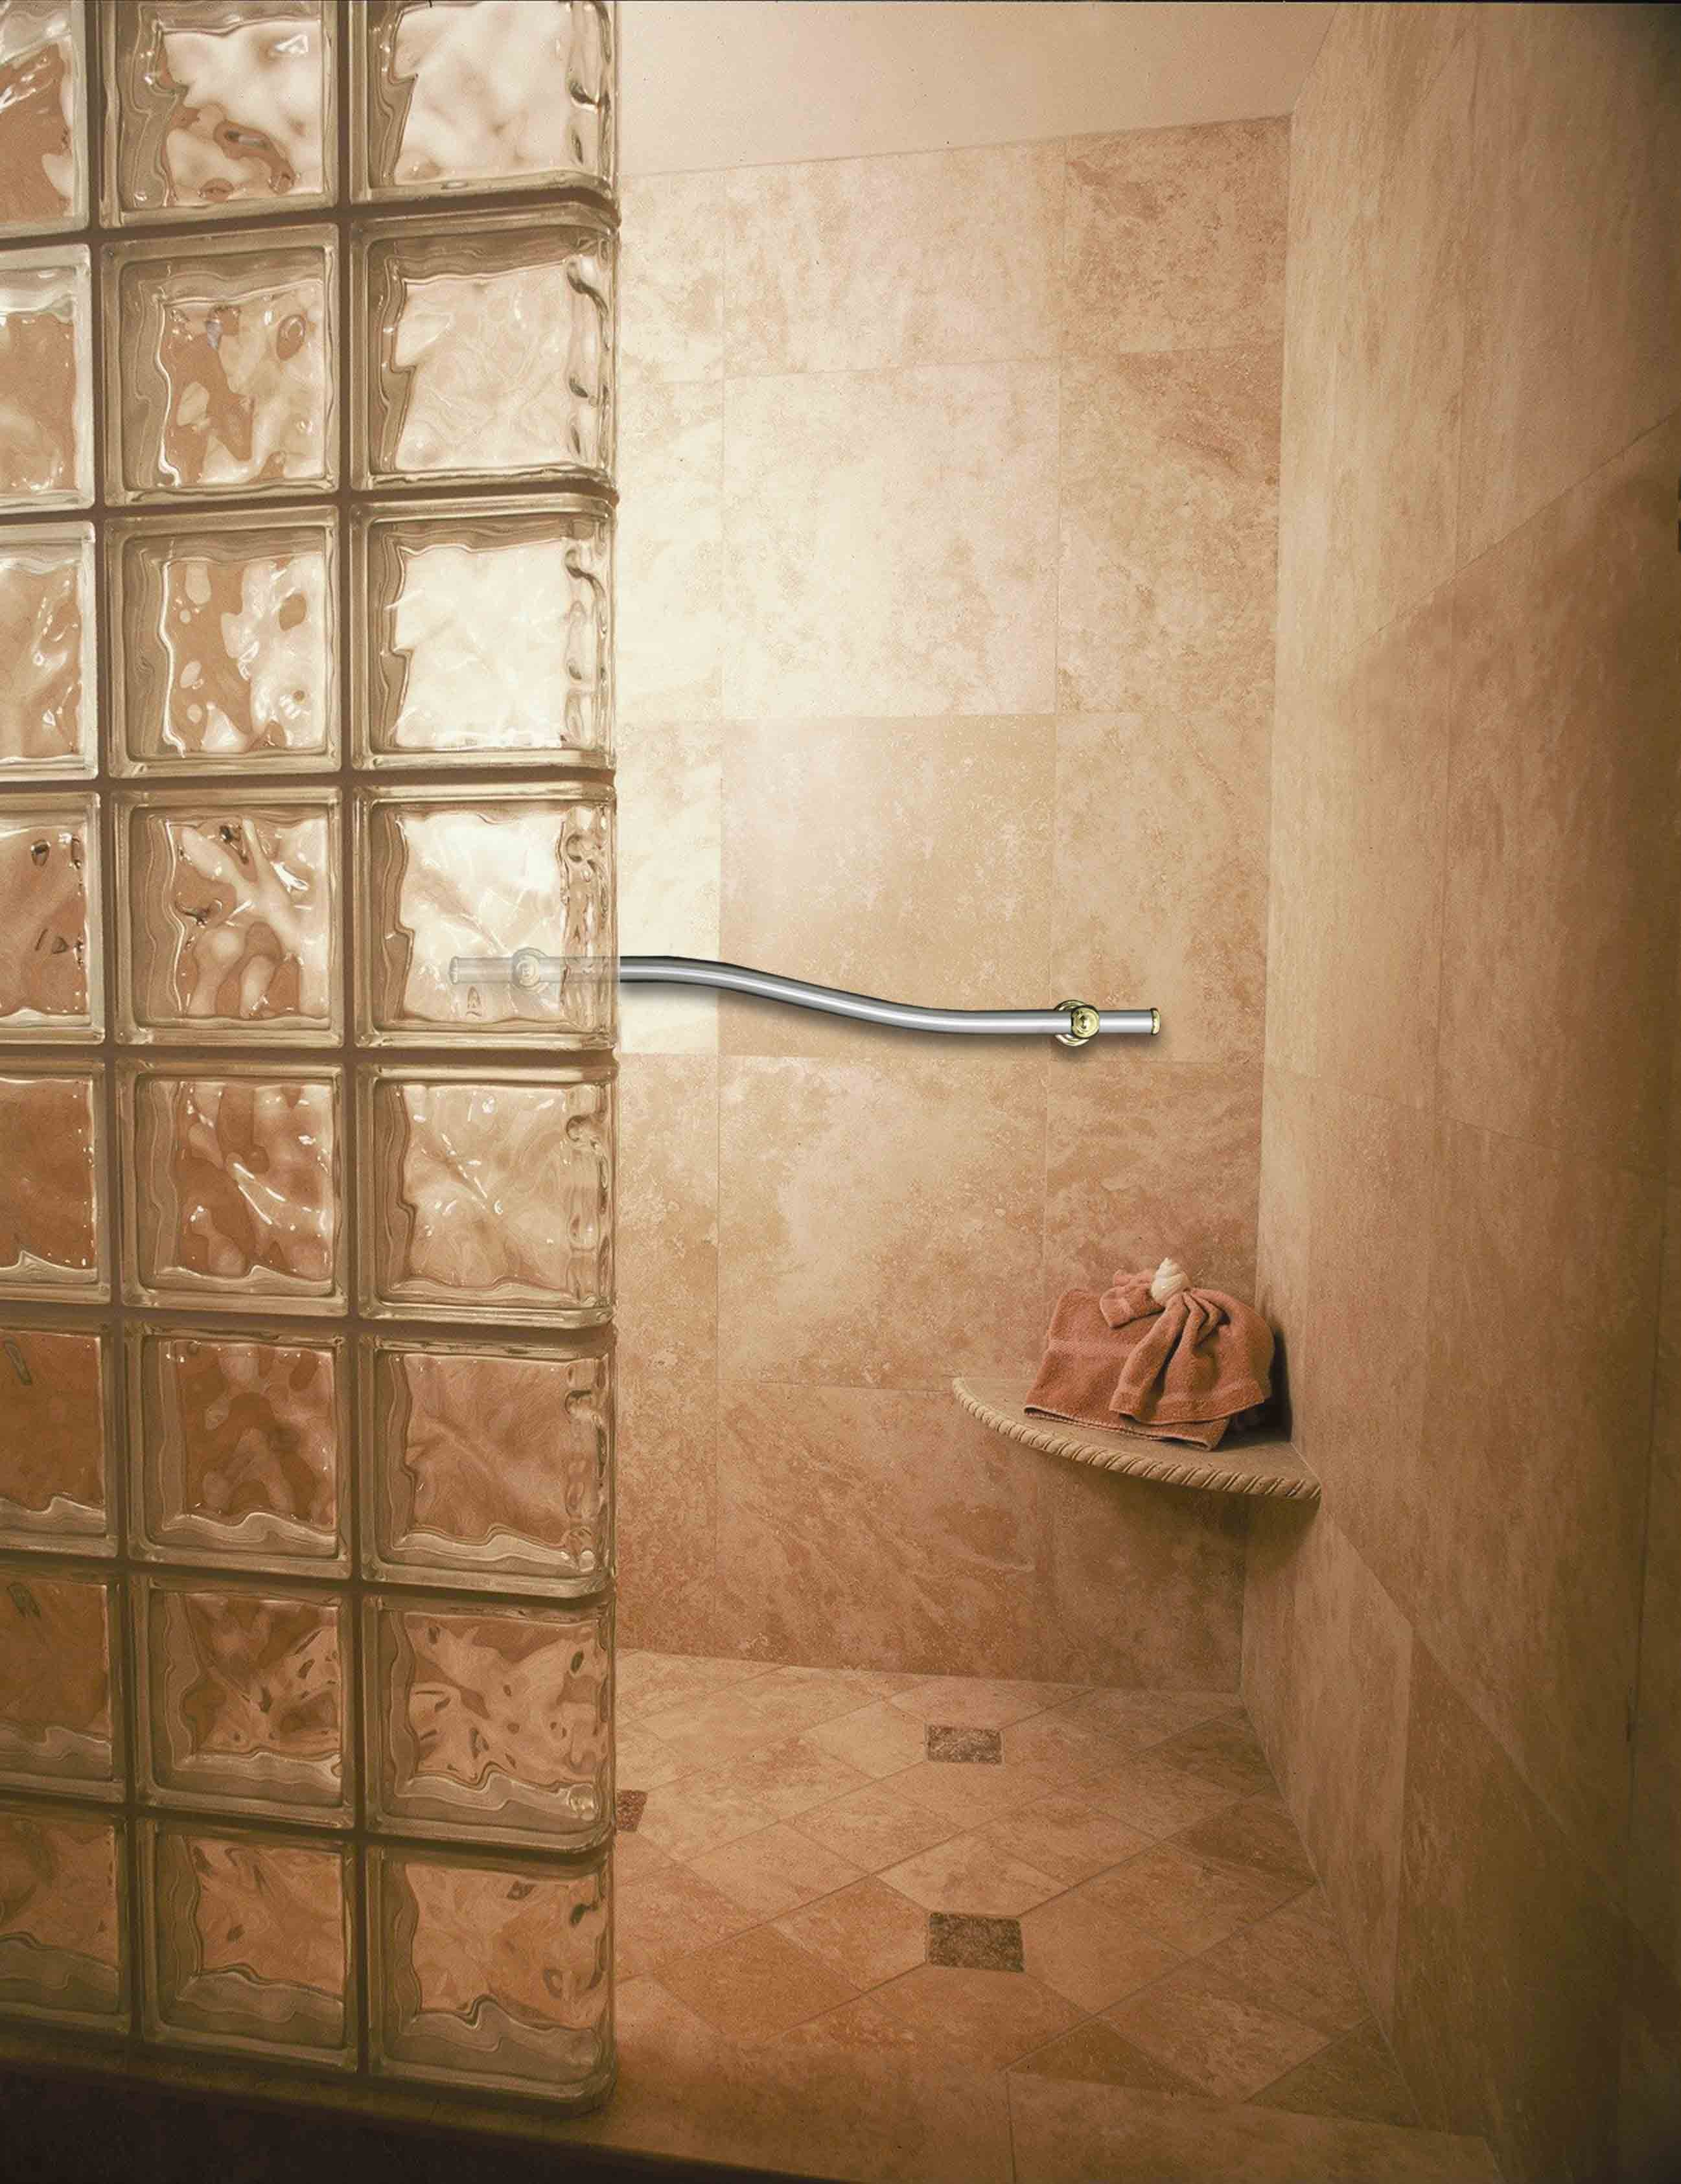 ordinary-shower-wall-design-ideas-9-rustic-in-shower-ideas-exquisite-walk-glass-block-wall-design-for-modern-bathroom